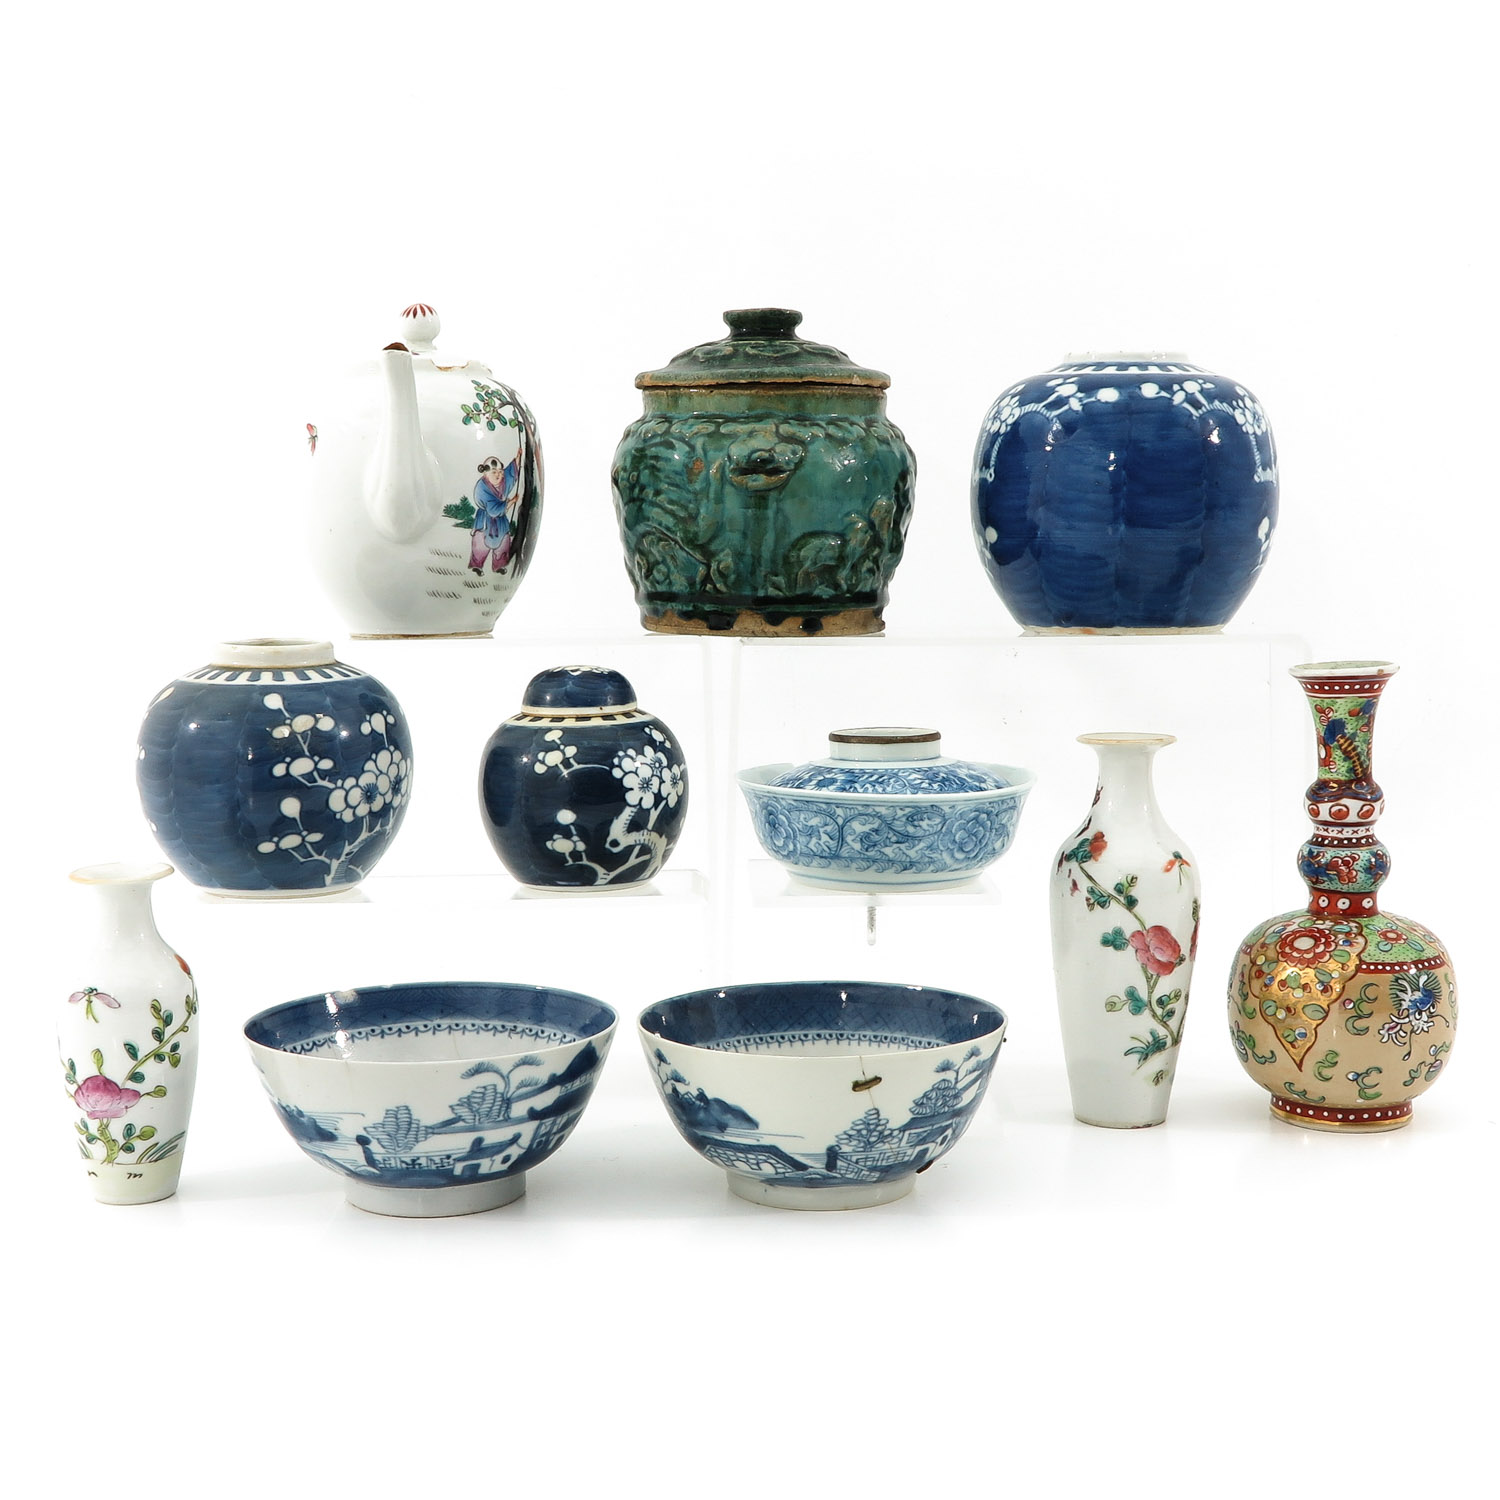 A Large Collection of Porcelain - Image 4 of 10